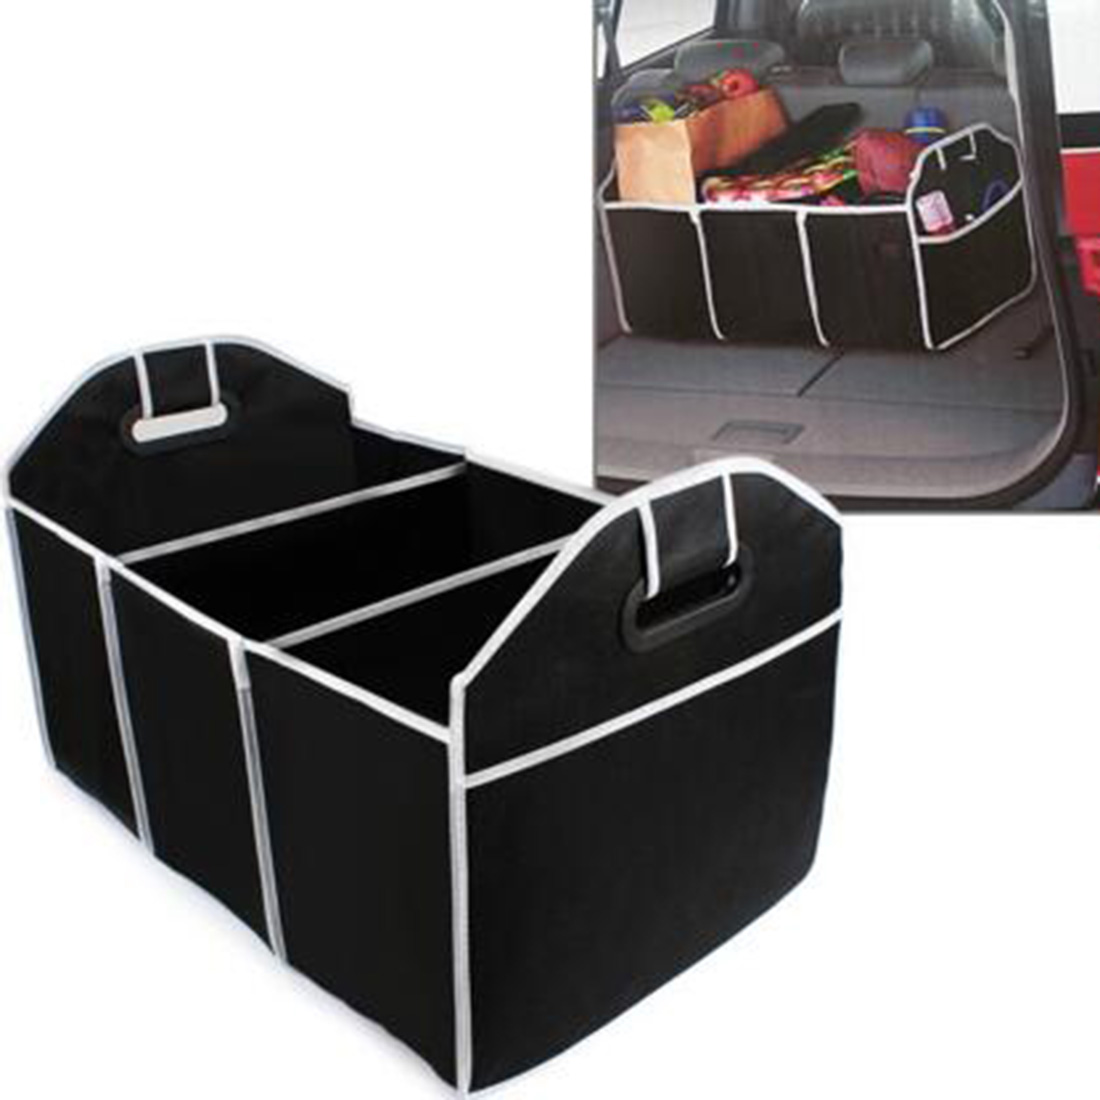 new fashion non woven toys food storage container bags box styling auto interior accessories. Black Bedroom Furniture Sets. Home Design Ideas